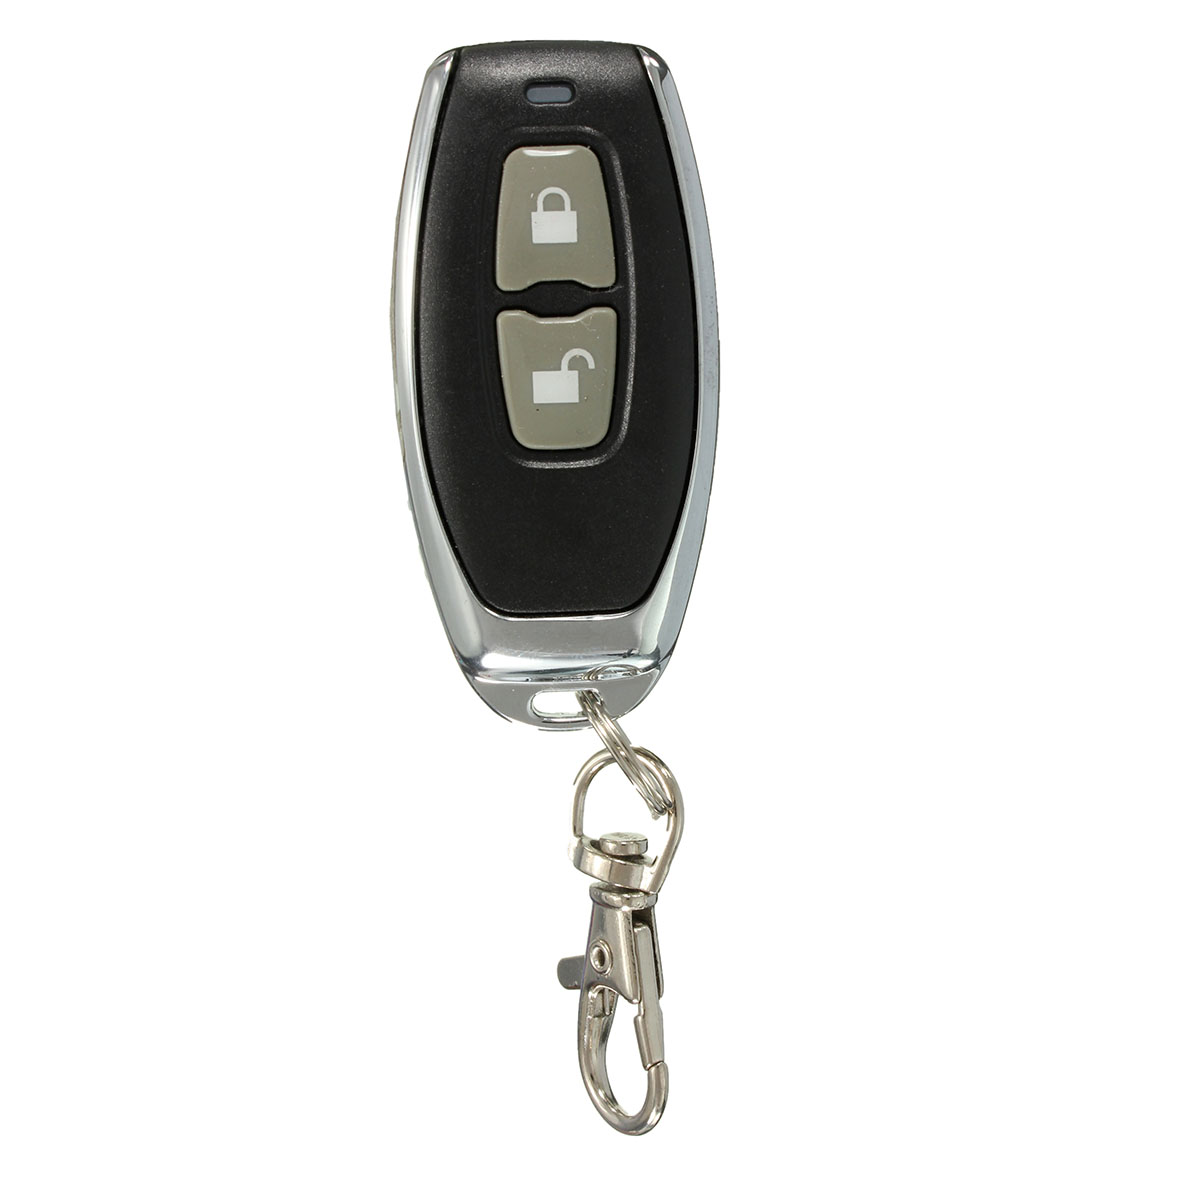 Universal car remote central control door lock locking for Keyless entry system